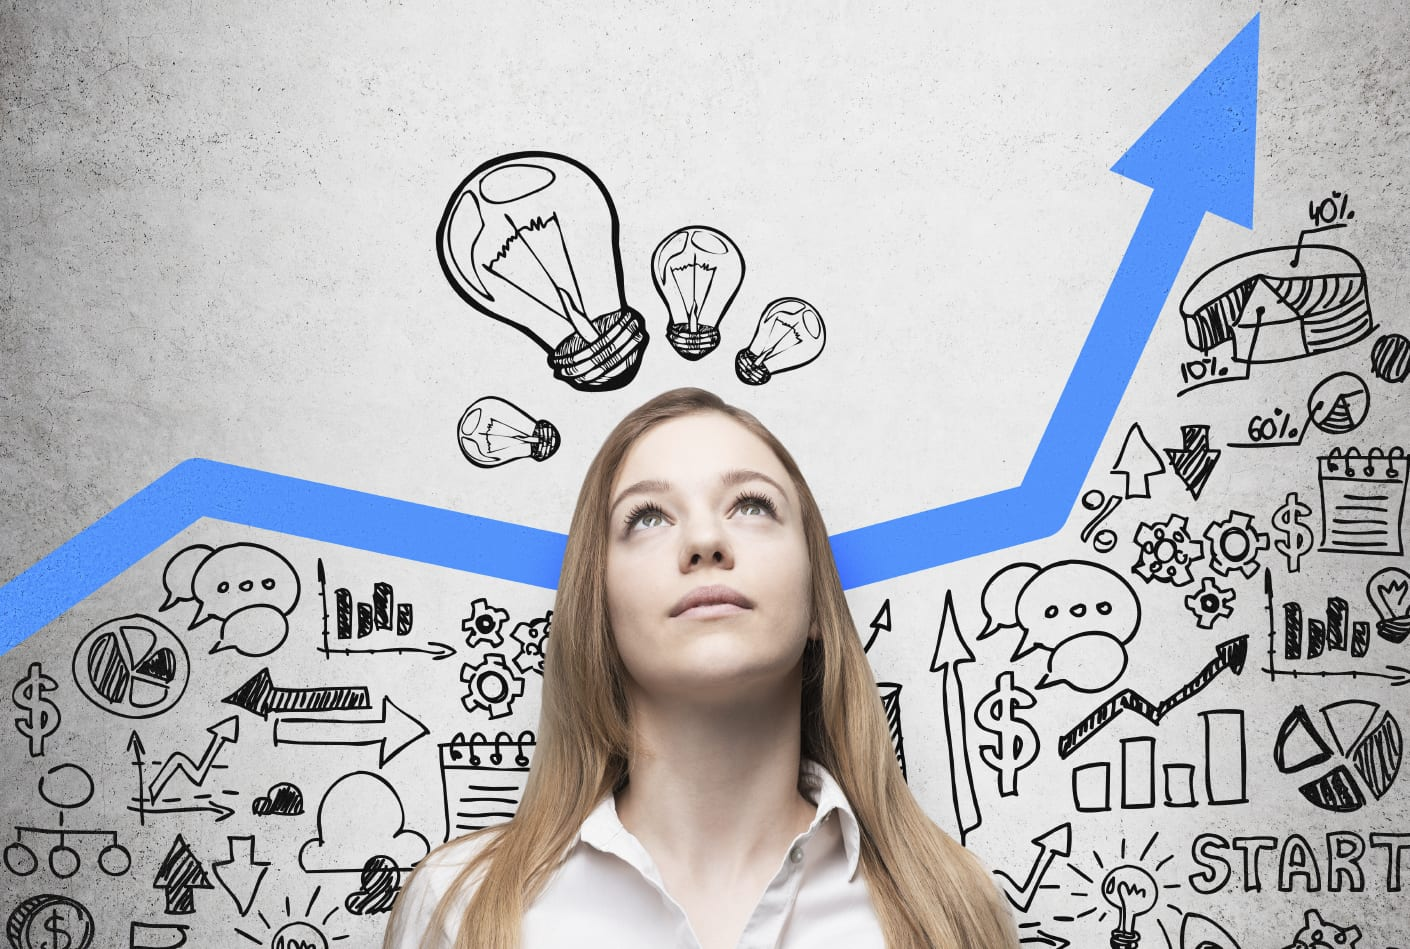 5 Ways to Improve Your Business Immediately